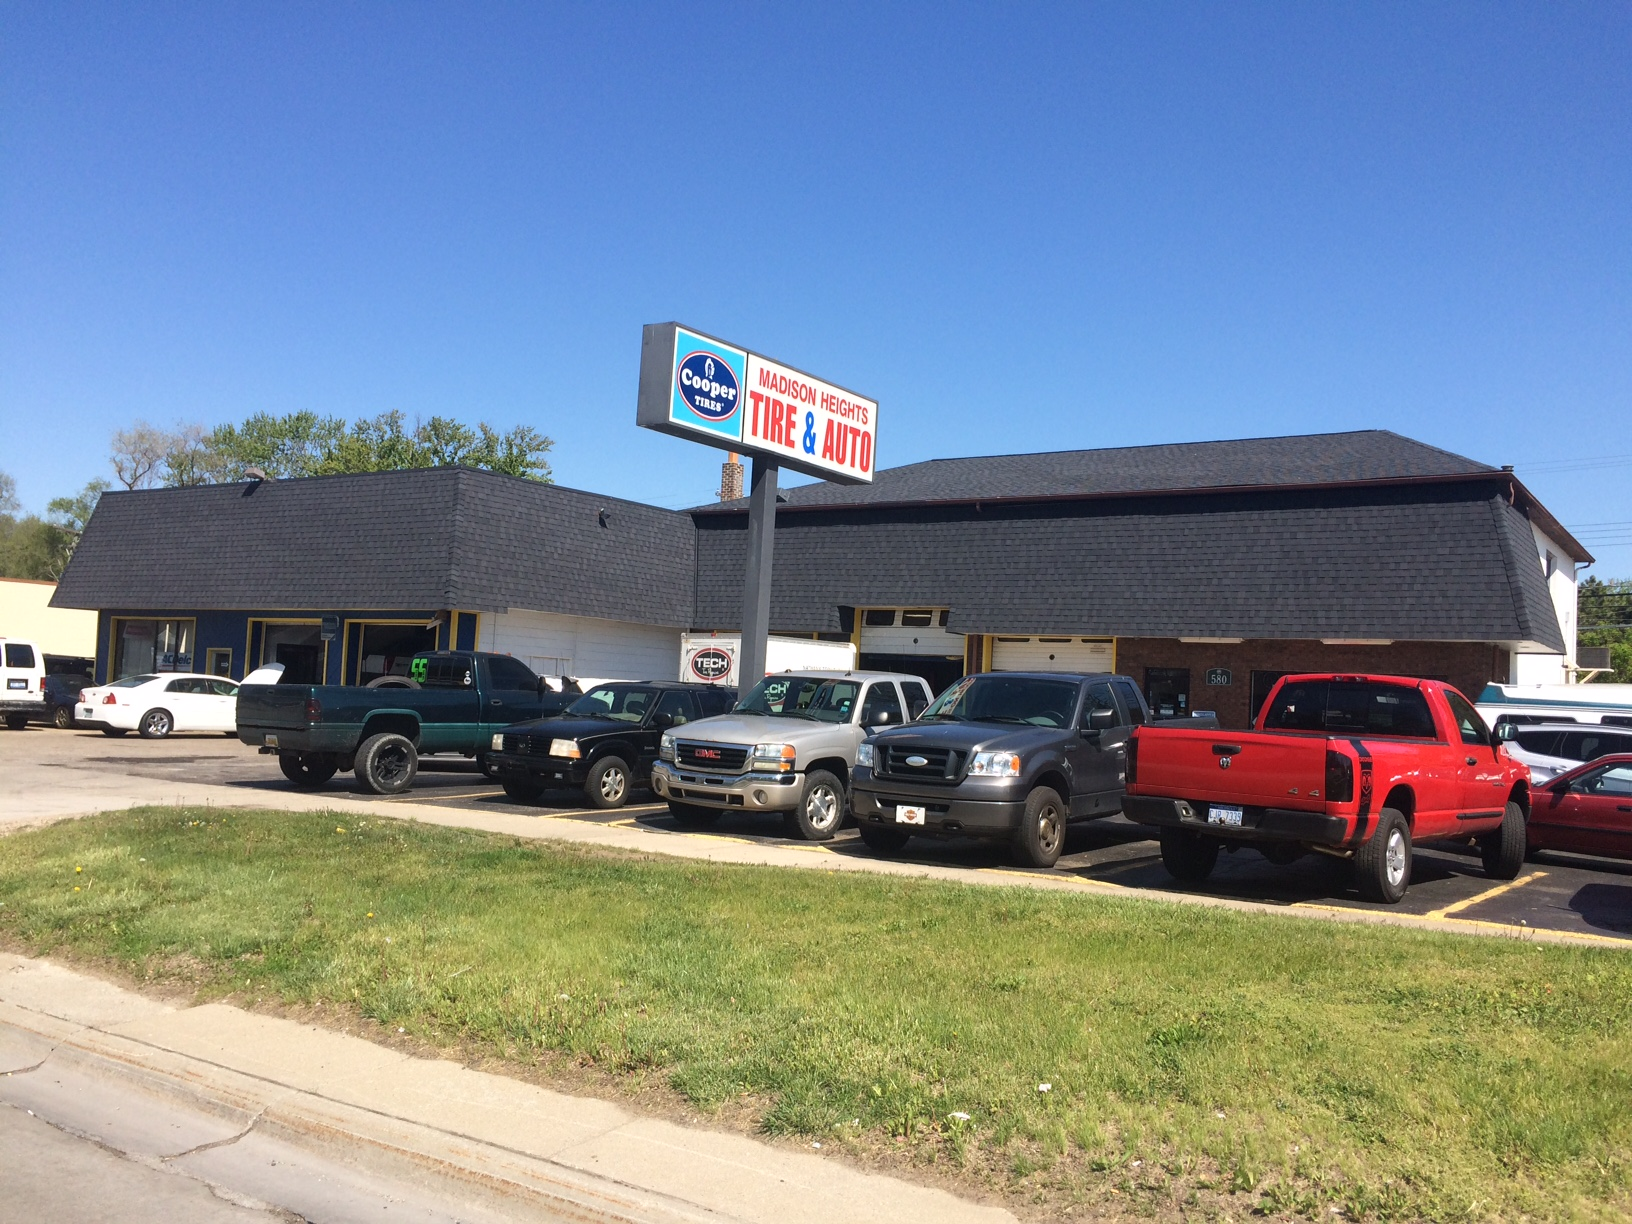 Madison Heights Tire & Auto image 2